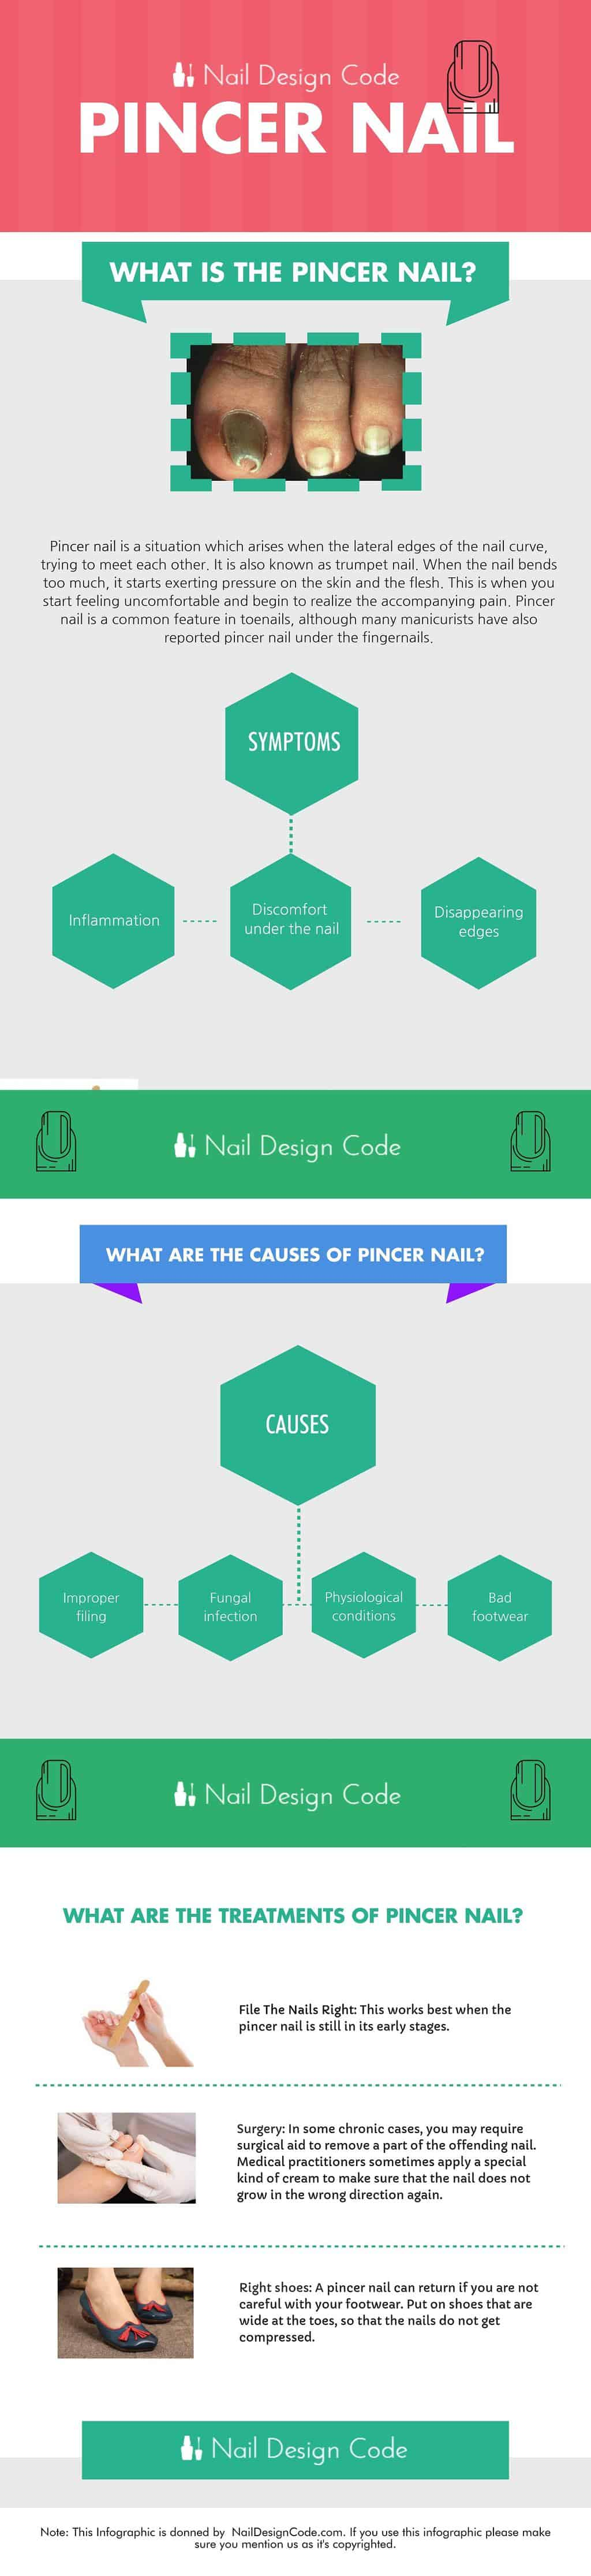 Pincer nail infographic